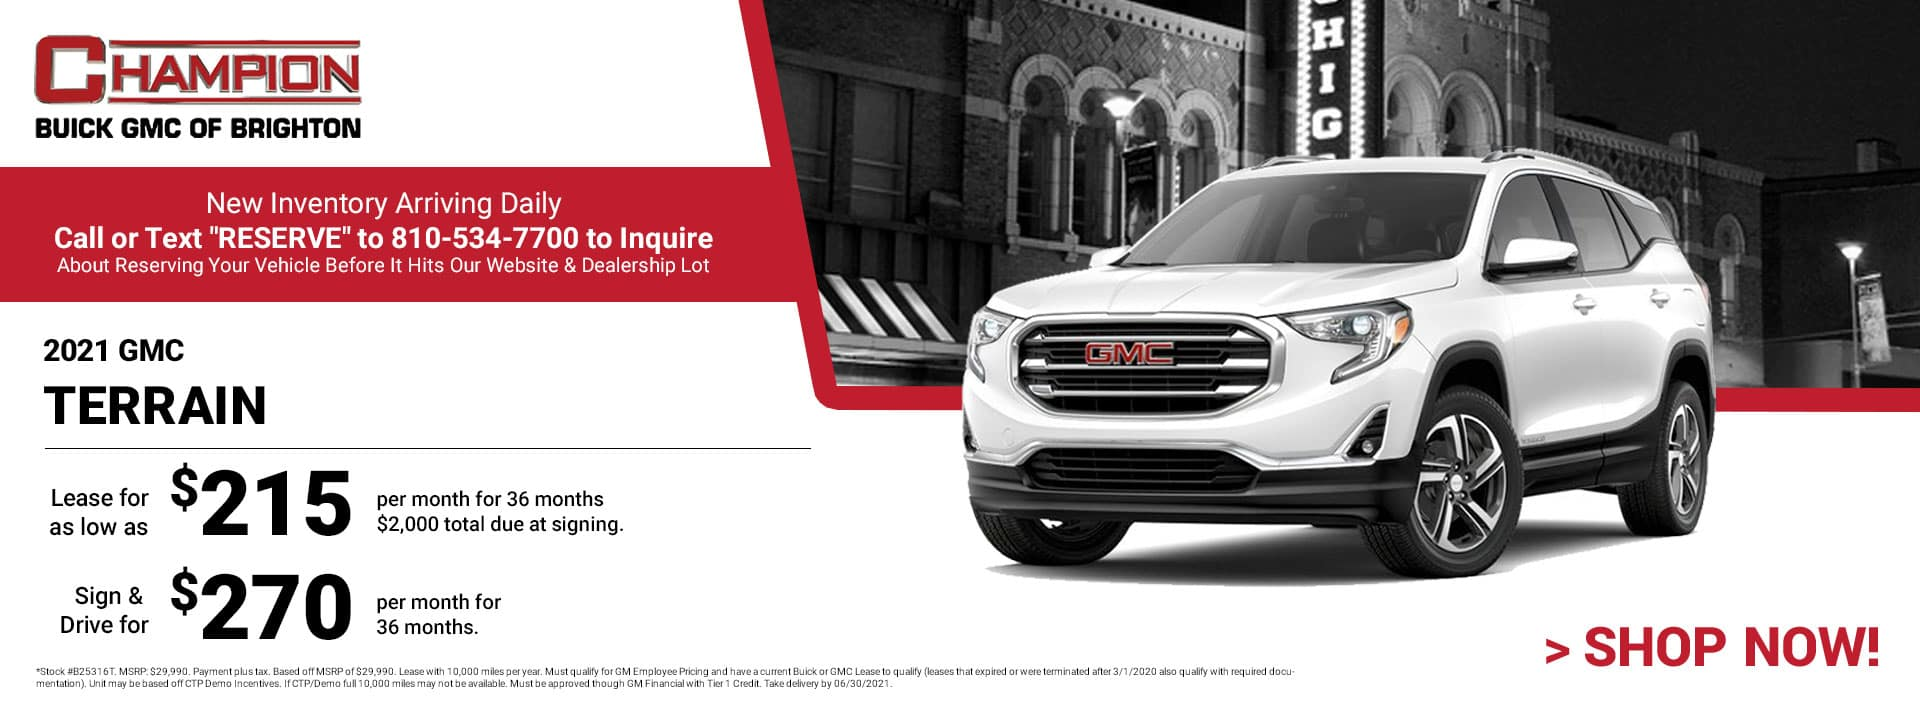 2021 GMC Terrain - Lease for just: $215 per month for 36 months $2,000 total due at signing. Sign & Drive for $270 per month for 36 months. *Stock #B25316T. MSRP: $29,990